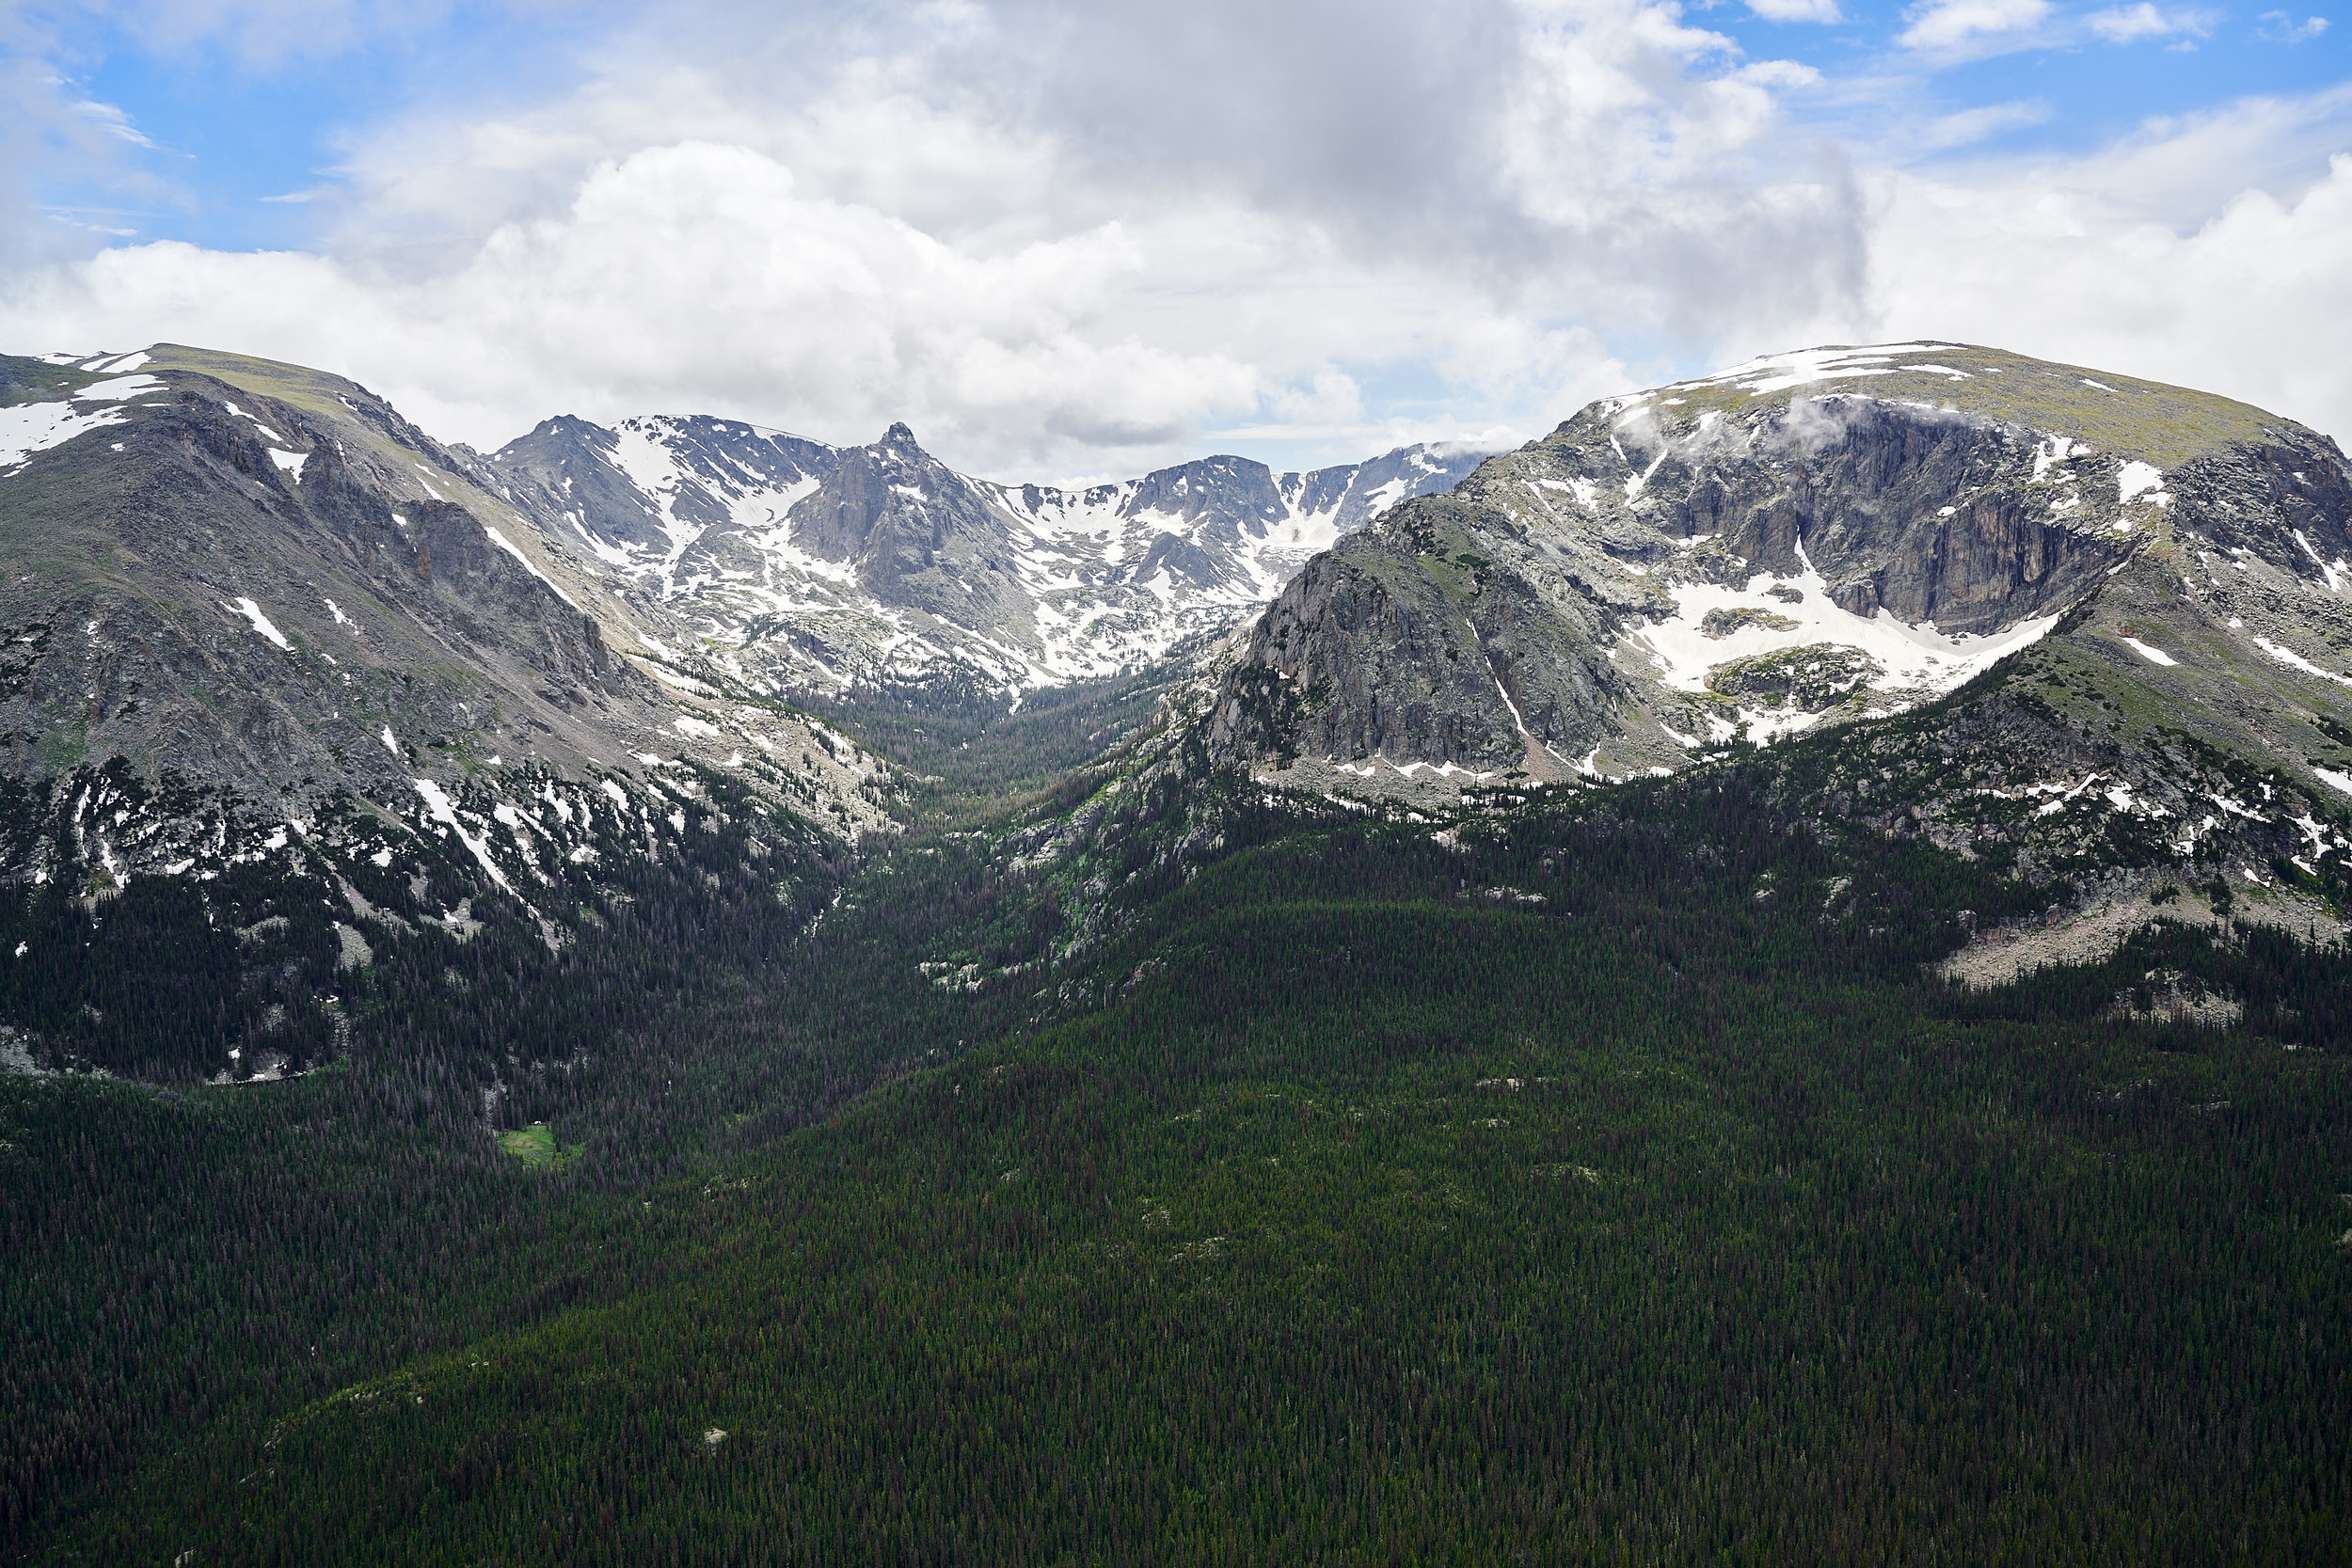 The majestic Rocky Mountains